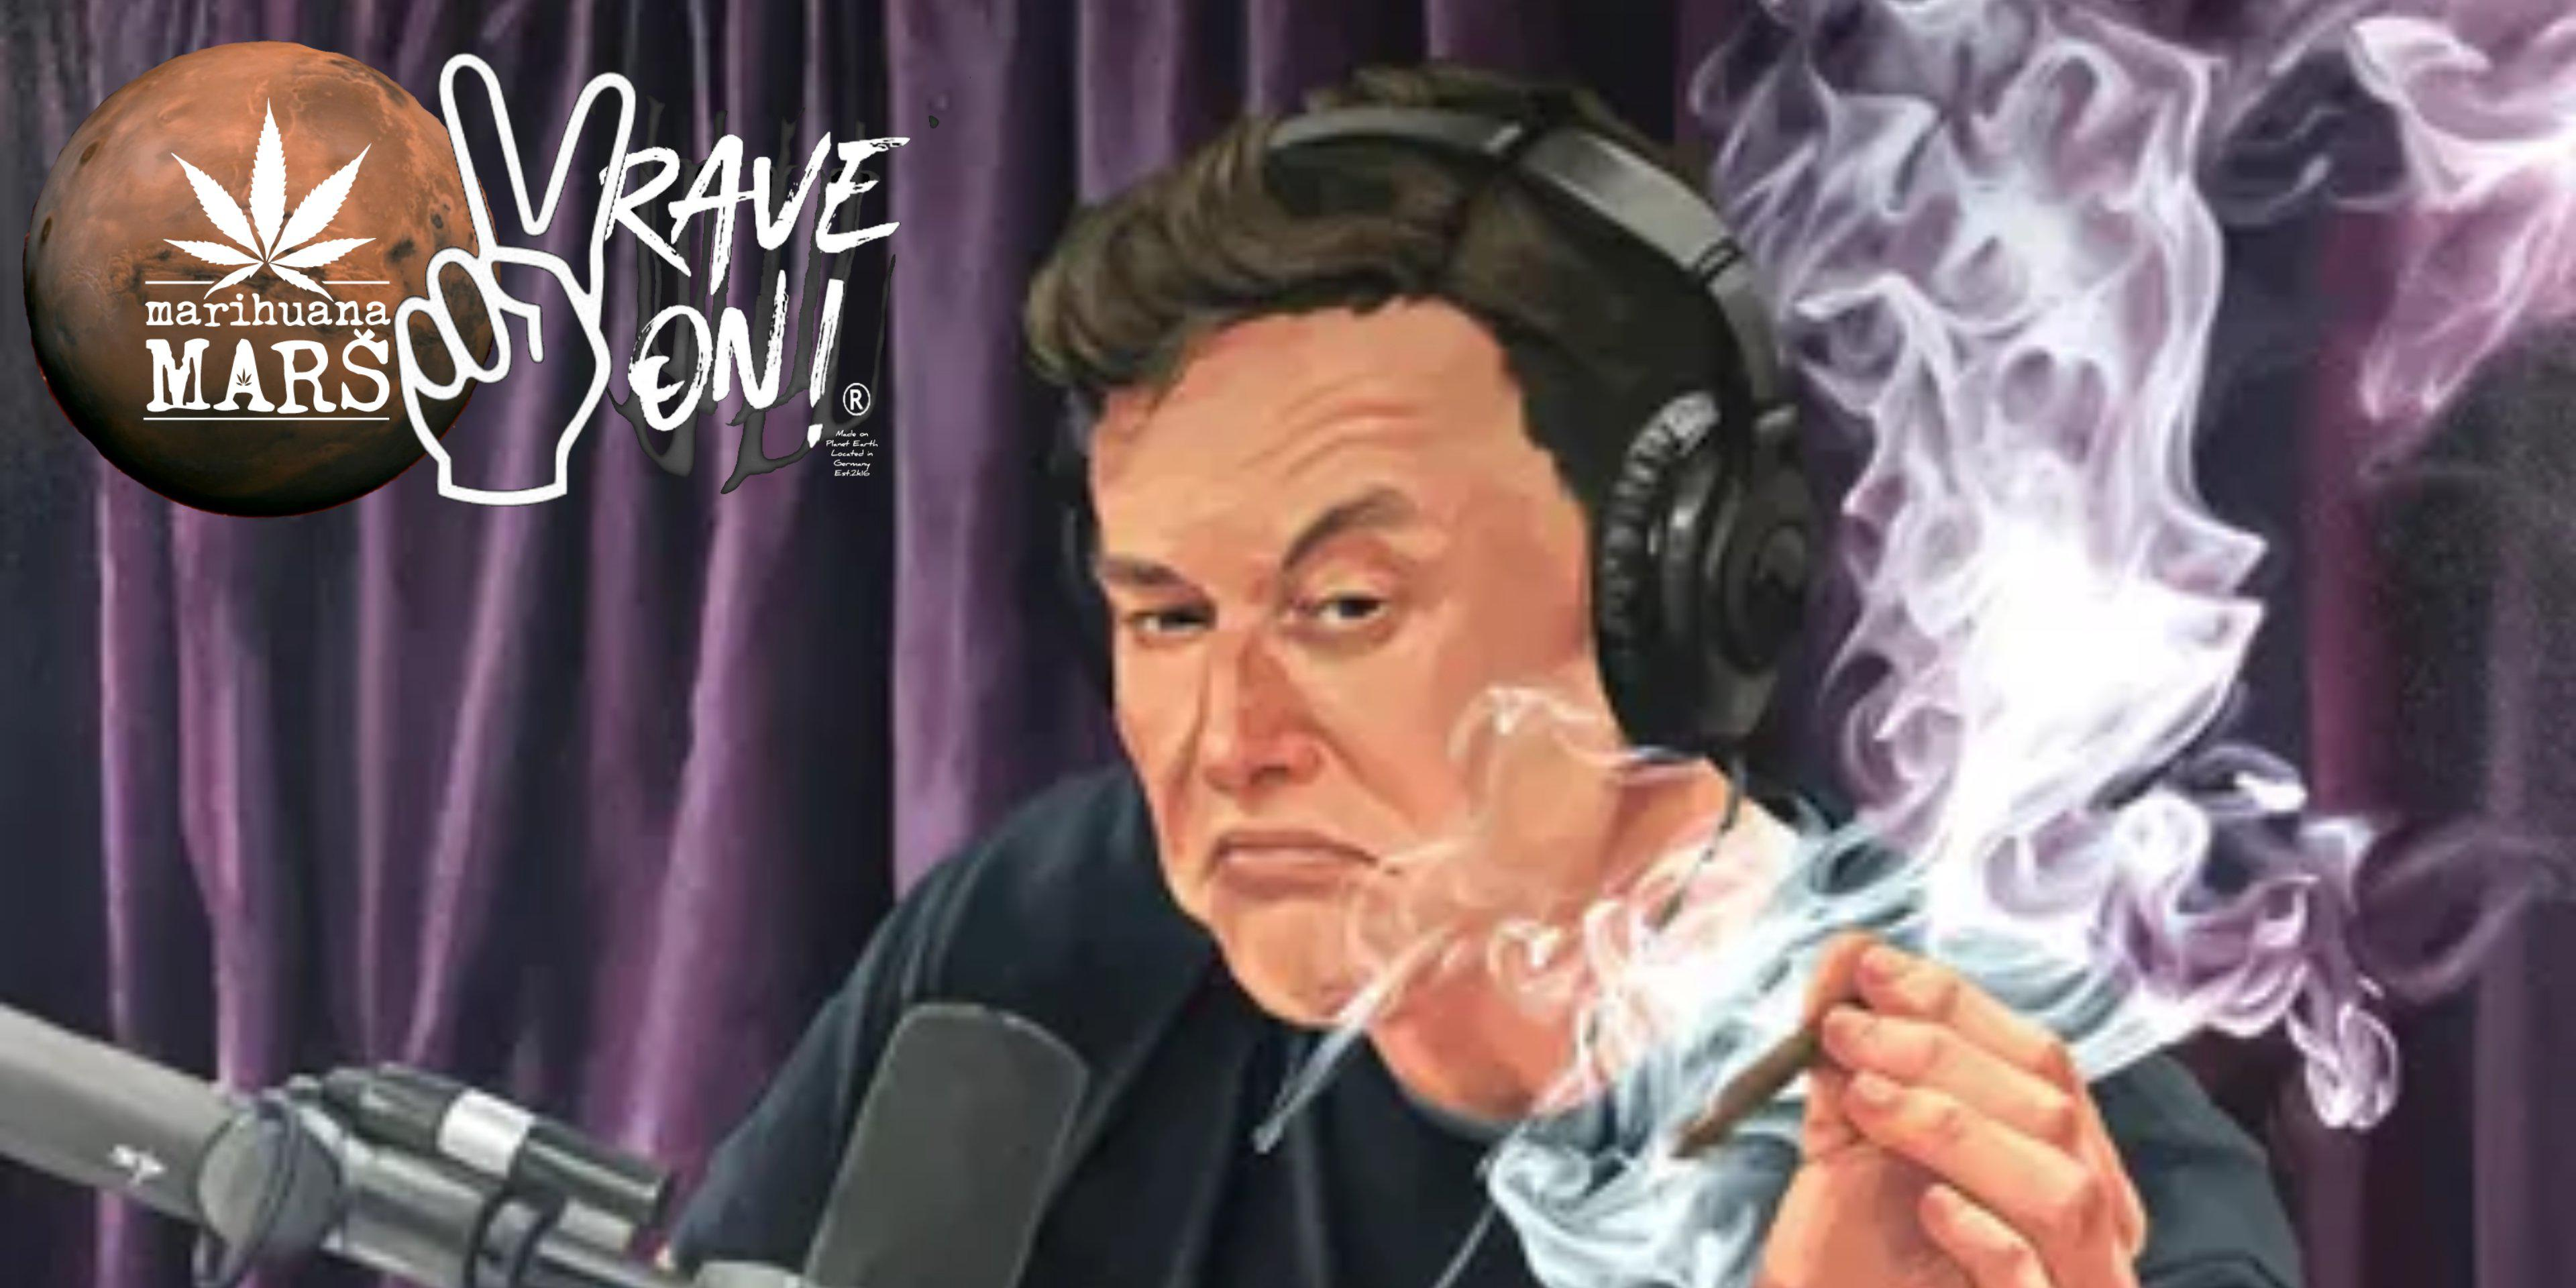 Elon Musk der Cannabis Dealer?